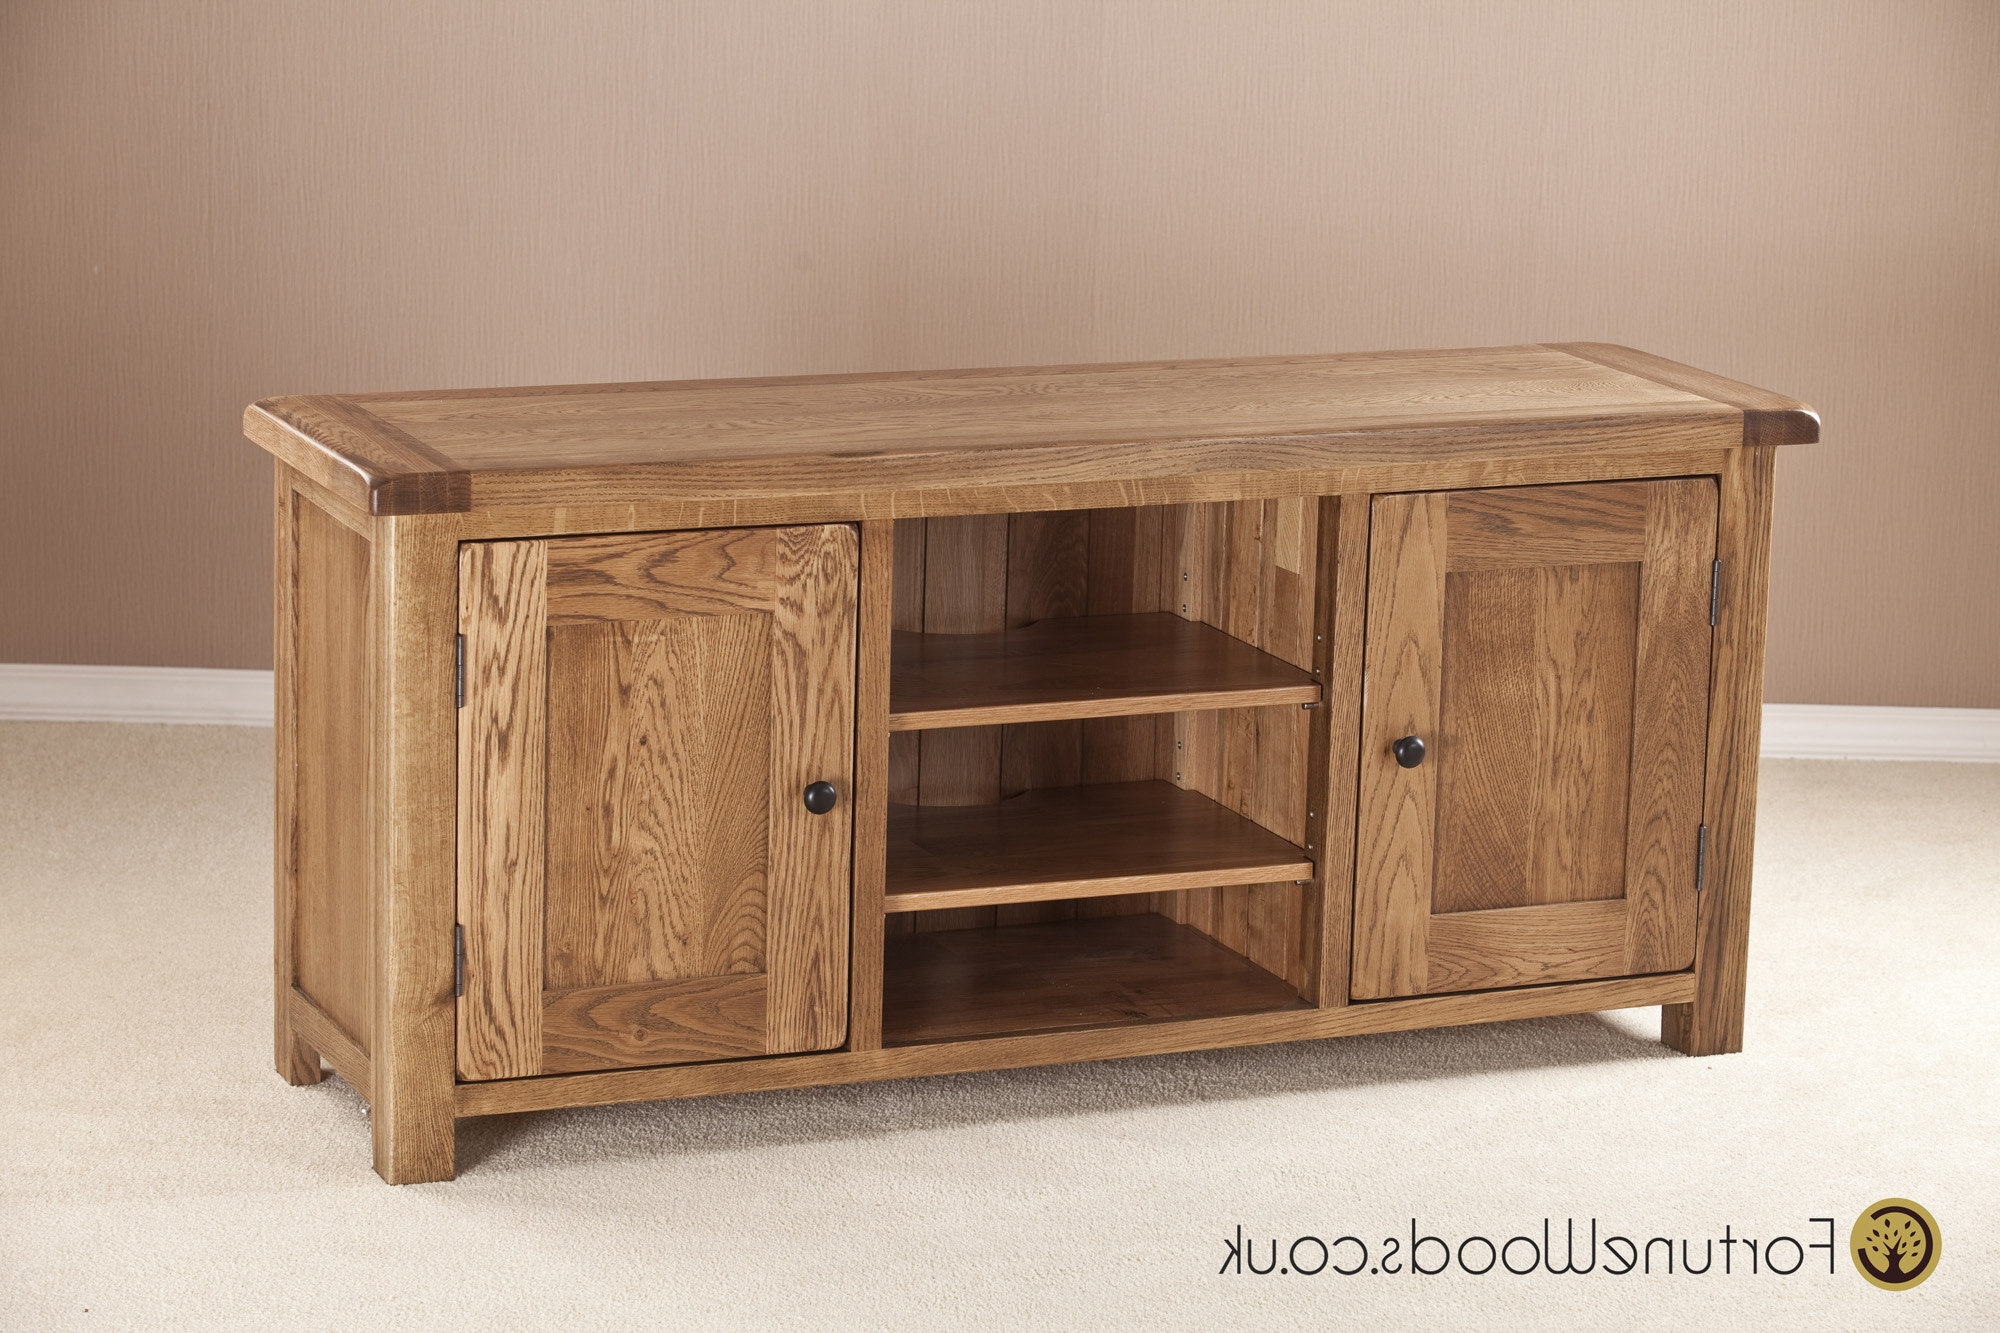 Most Recent Oak Tv Cabinets With Doors Intended For Large Oak Tv Unit With Wooden Doors (View 6 of 20)